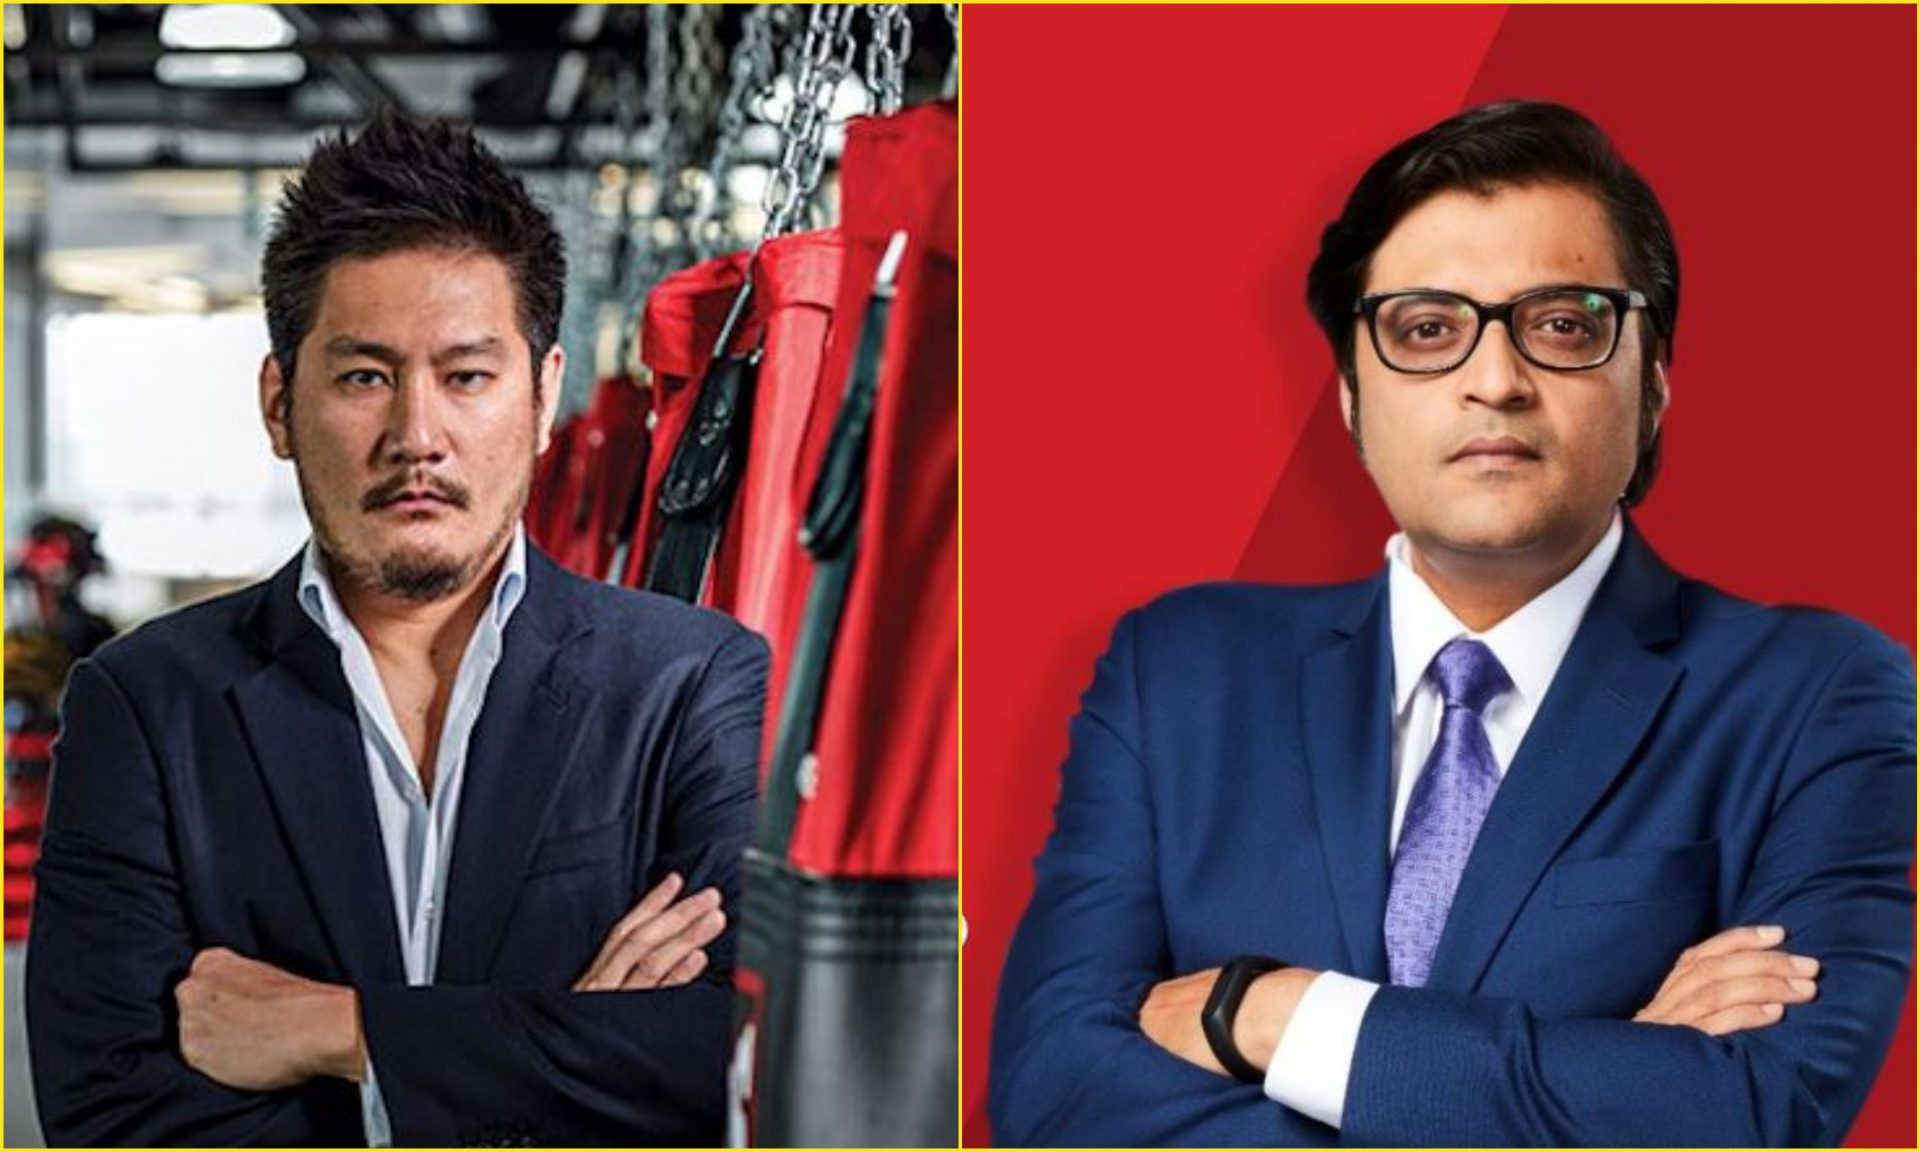 'The Apprentice: ONE Championship Edition' to air on Republic TV in India - ONE Championship